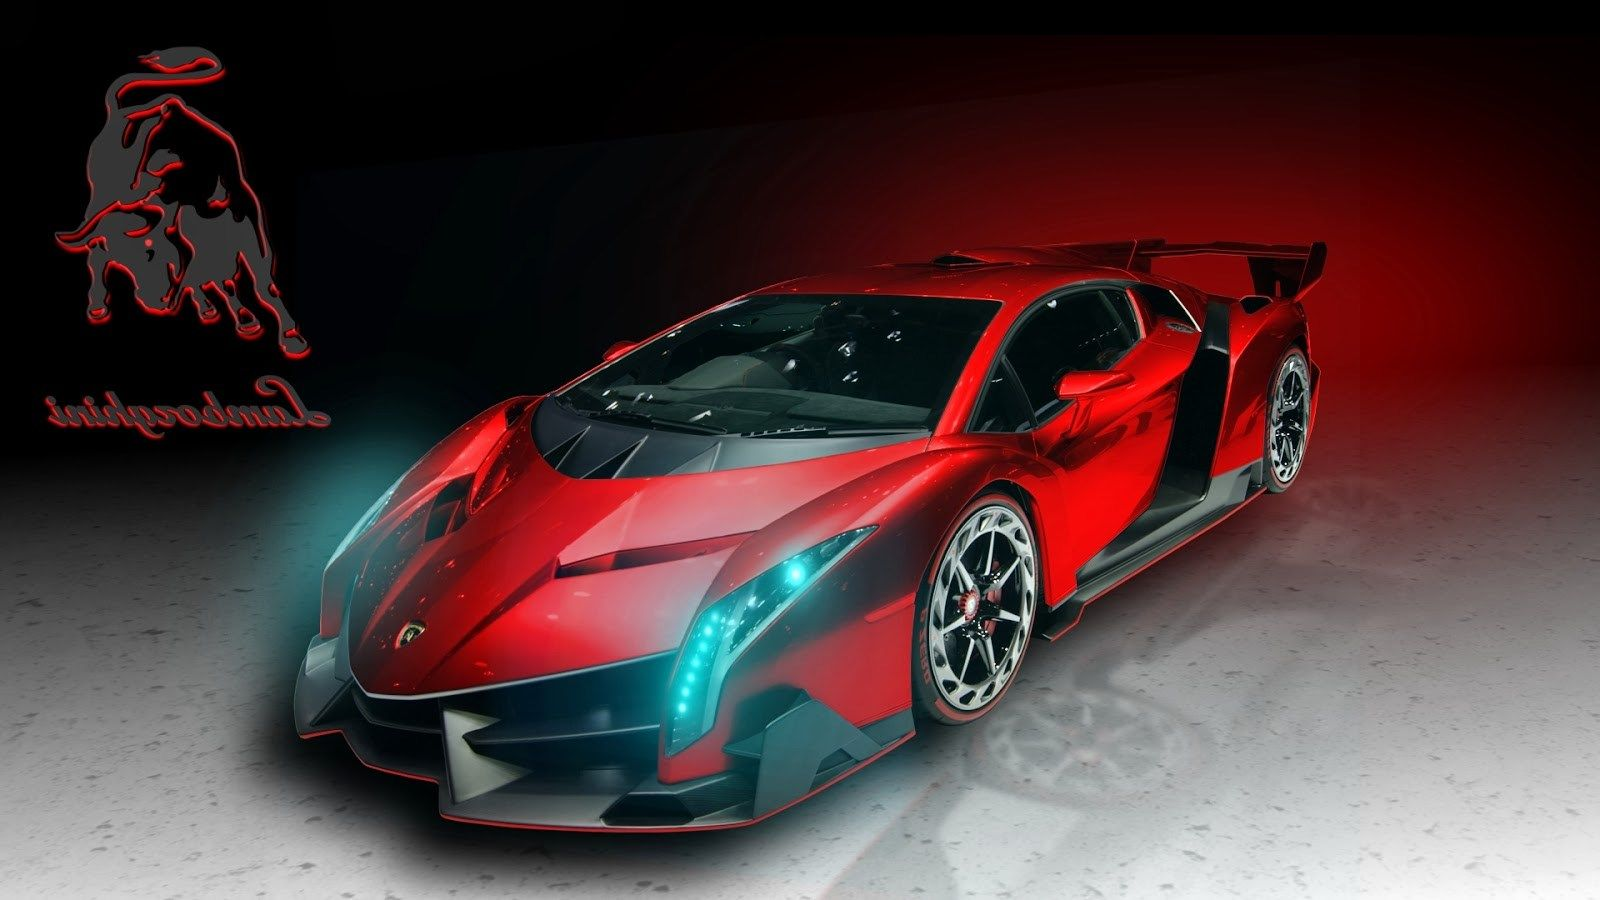 Lamborghini Veneno Roadster Wallpaper Hd Lamborghini Roadster